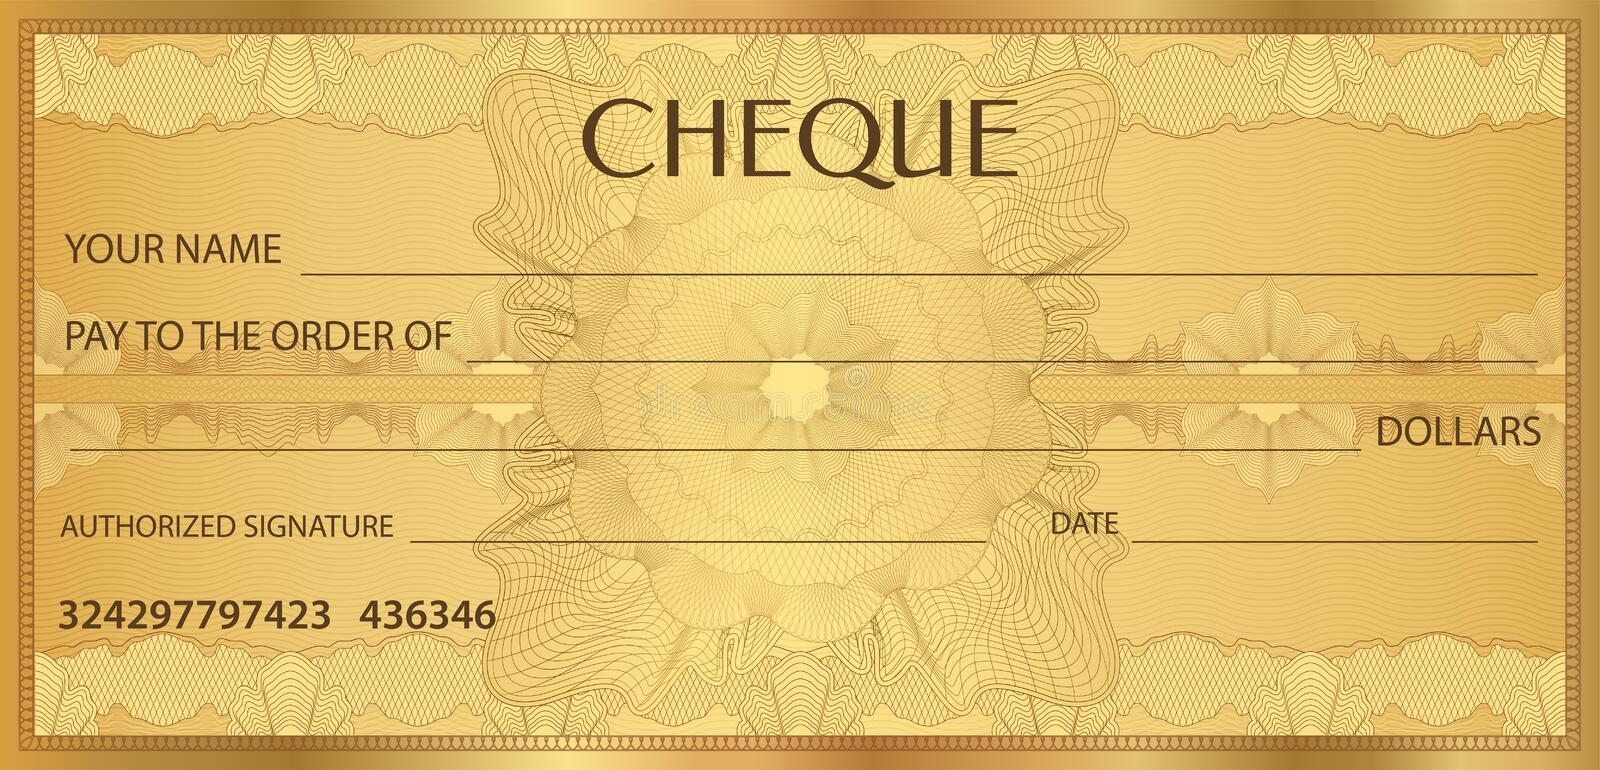 Check Cheque, Chequebook Template. Guilloche Pattern With Watermark ...